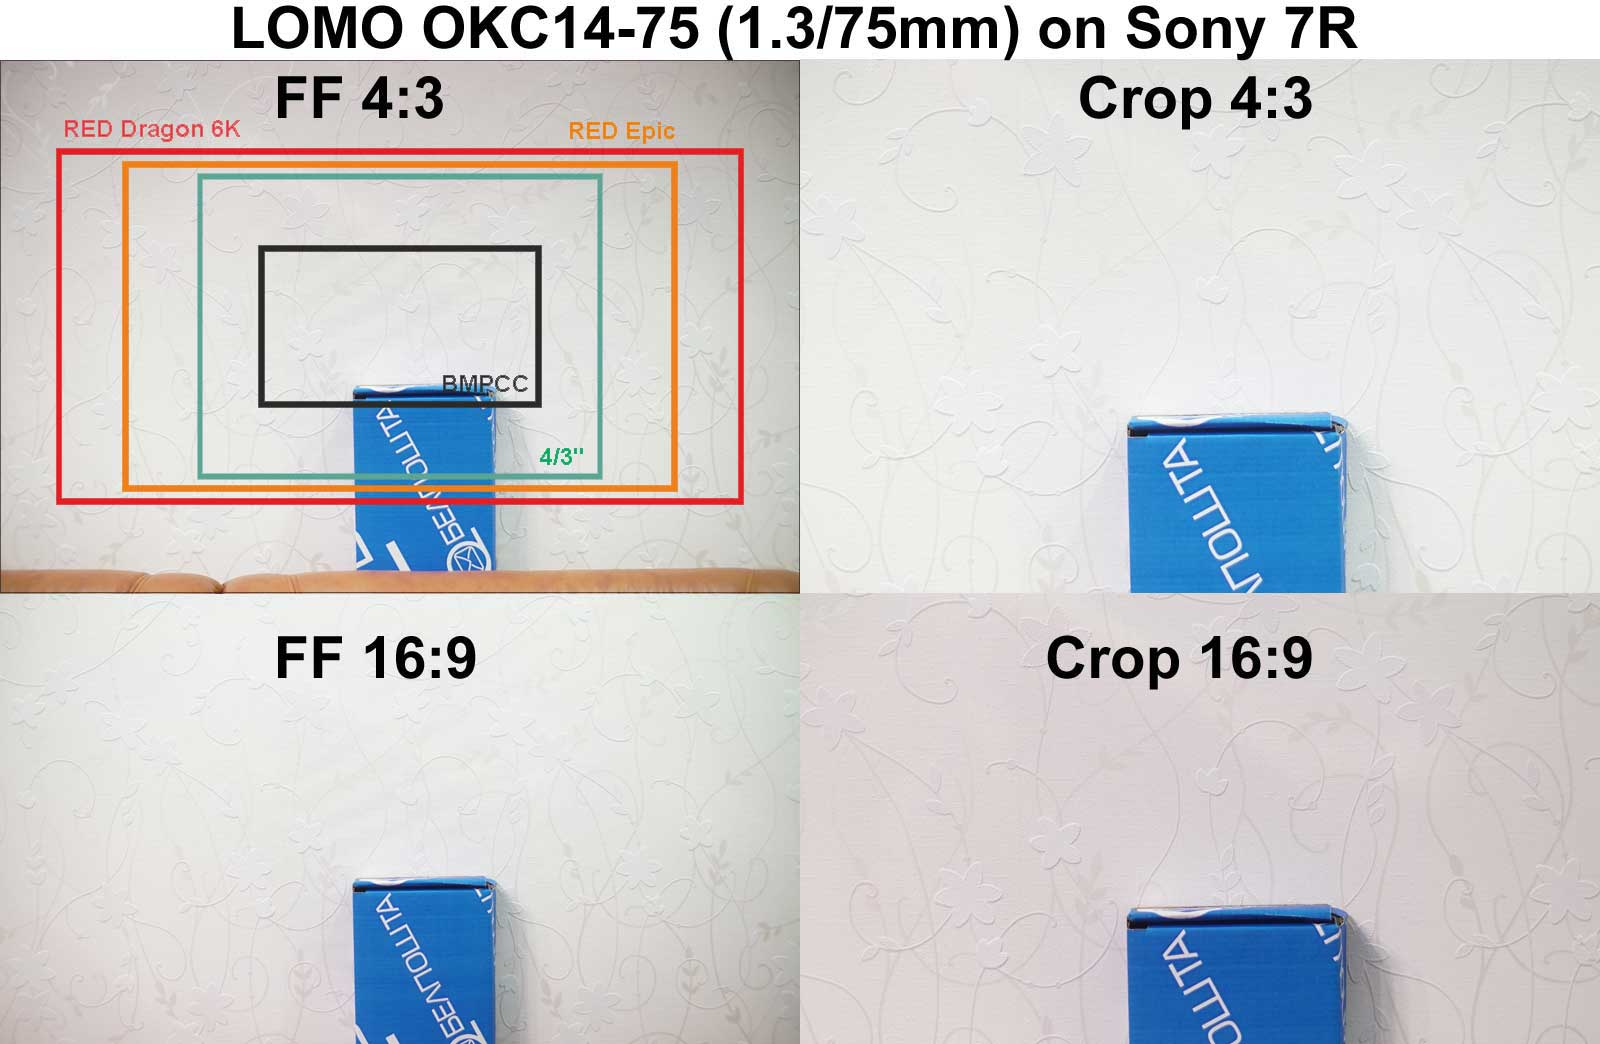 Coverage of LOMO OKC14-75 lens on Sony 7R camera